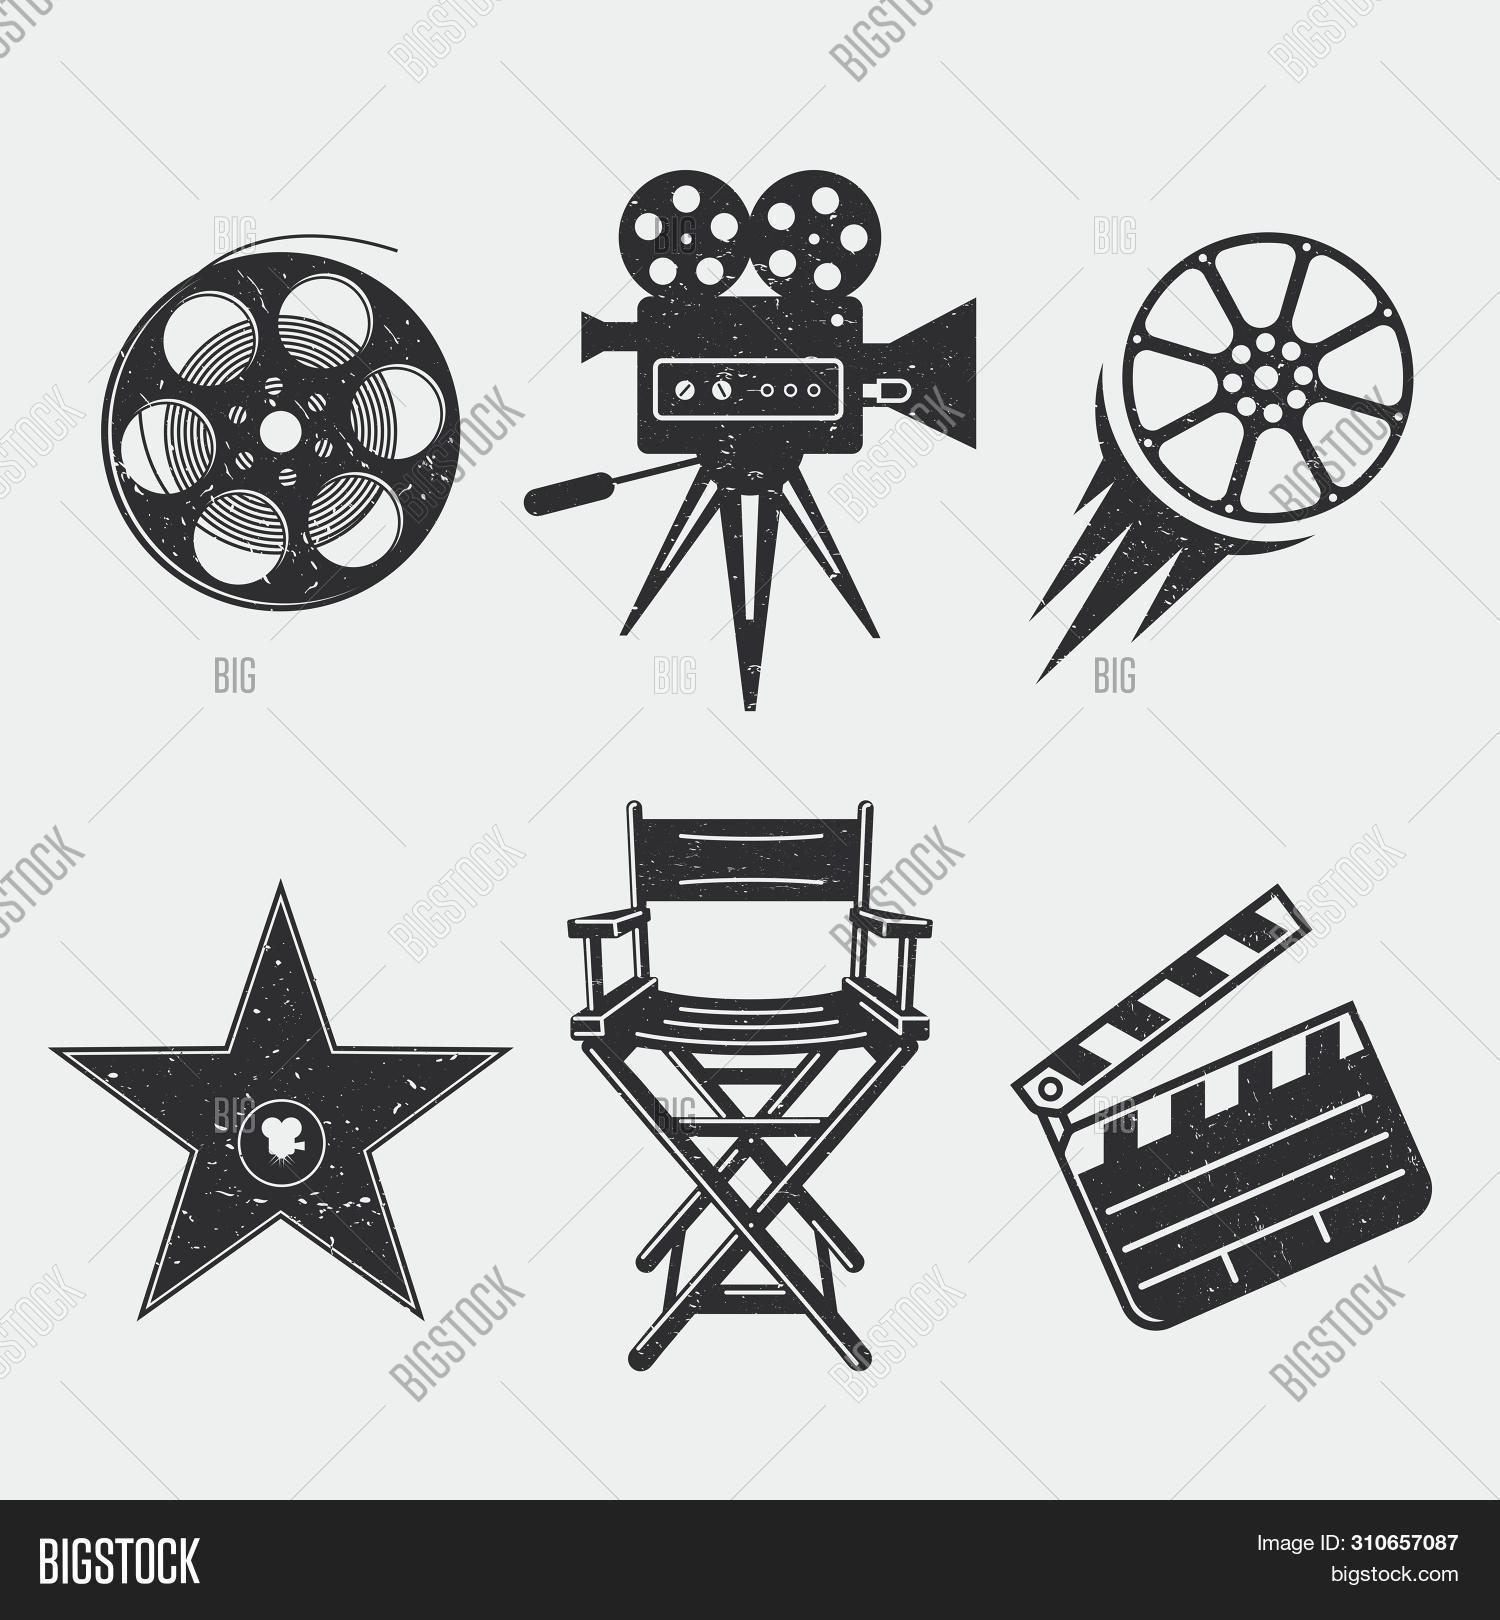 armchair,camera,chair,cine-film,cinema,clapper,corporate,design,director,emblem,entertainment,film,filmstrip,glitch,icon,illustration,isolated,label,logo,logotype,master,movie,multimedia,object,old,poster,production,projector,reel,retro,scratches,shabby,shooting,sign,silhouette,star,stereo,style,symbol,typography,vector,video,vintage